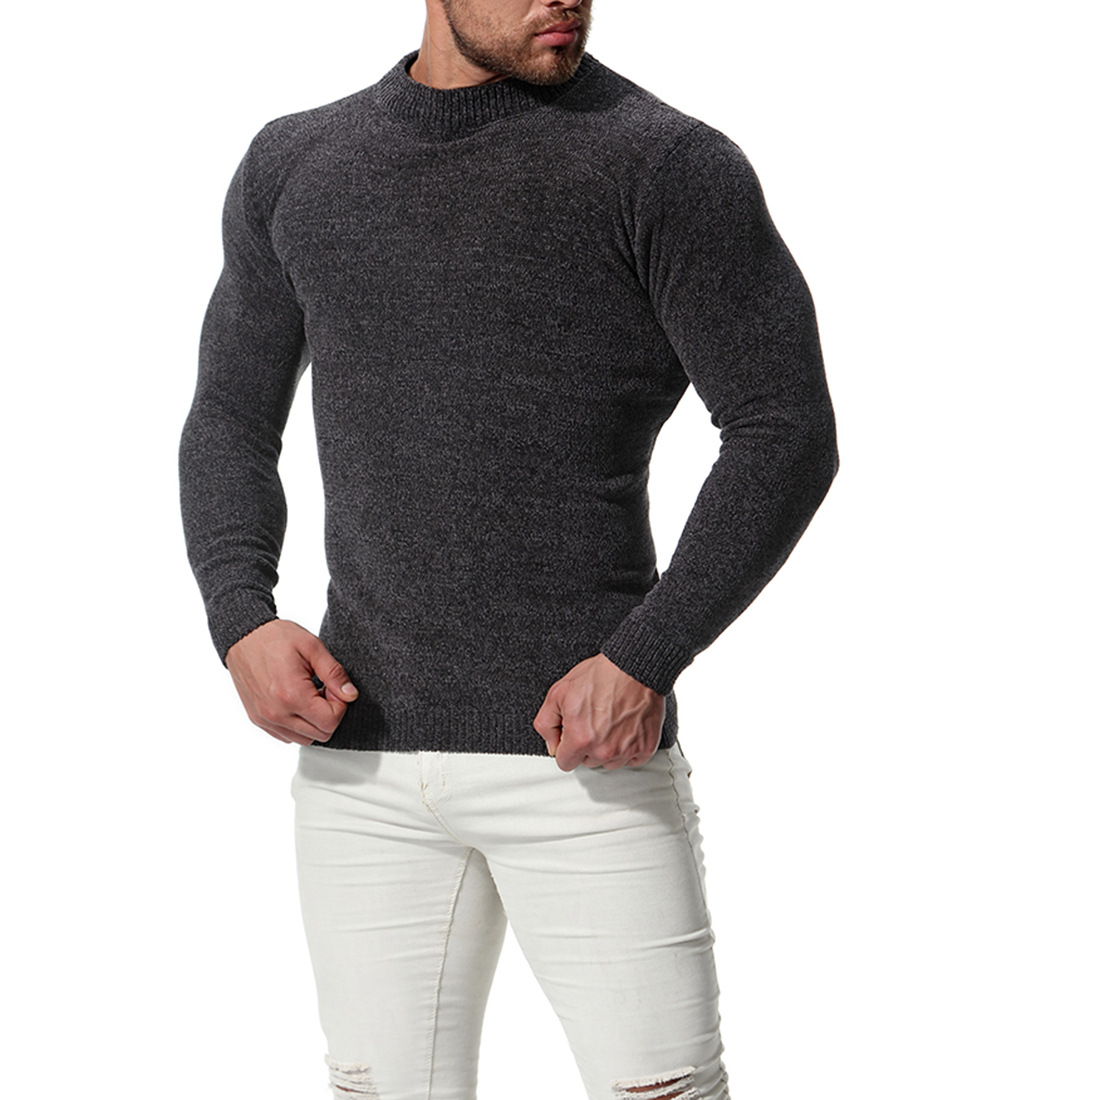 mens sweaters and pullovers 2018 winter long sleeve sweater for men good quality men knitted sweater in Pullovers from Men 39 s Clothing